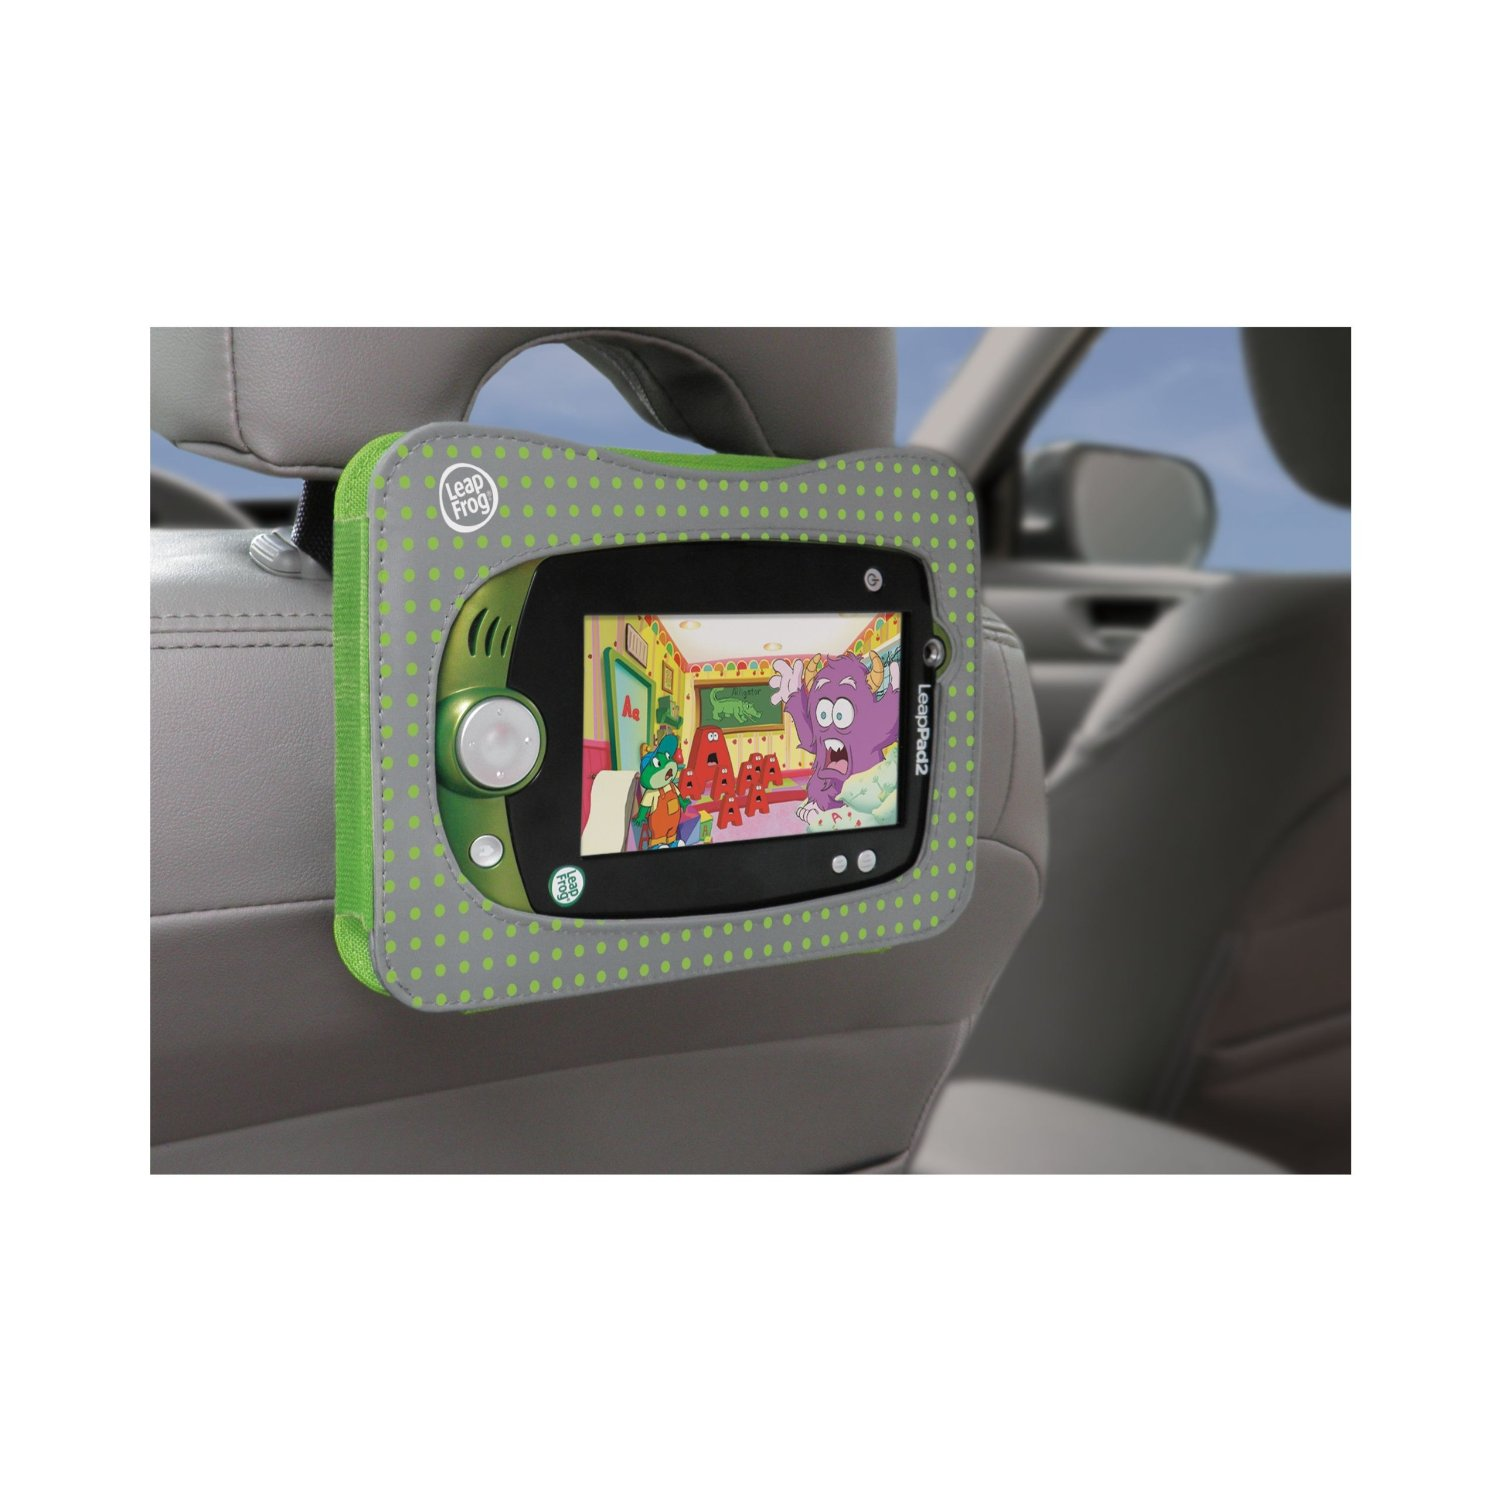 Amazon: LeapFrog LeapPad Video Display Case for only $9.24 Shipped (Reg. $19.99!)